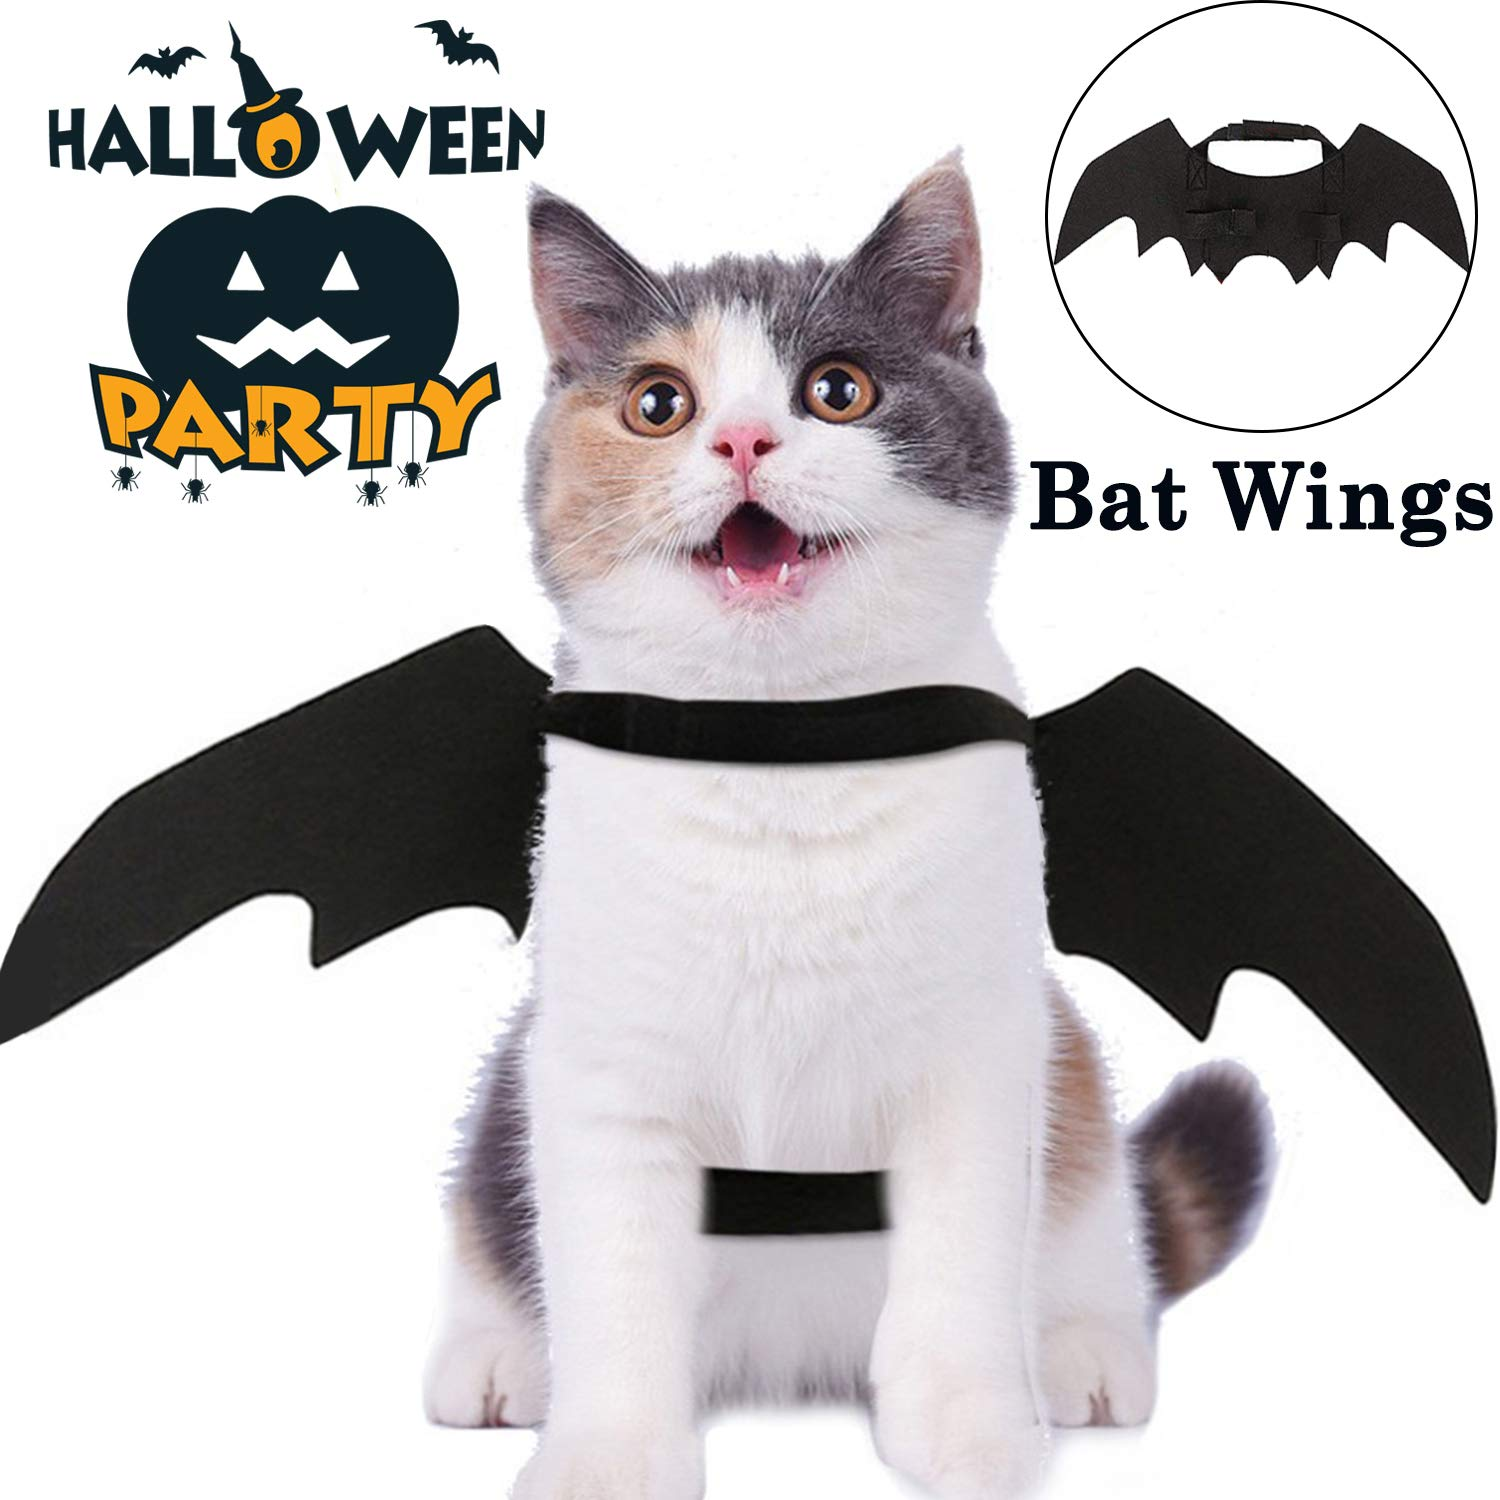 Halloween Costumes Pet Bat Wings for Cats Dogs Halloween Party Decorations Kitten Cosplay Toys Christmas Dress Up Puppy Small Medium Clothes Pet Bat Costume Black Vampire Wings Outfit Apparel Set CHARMCZ